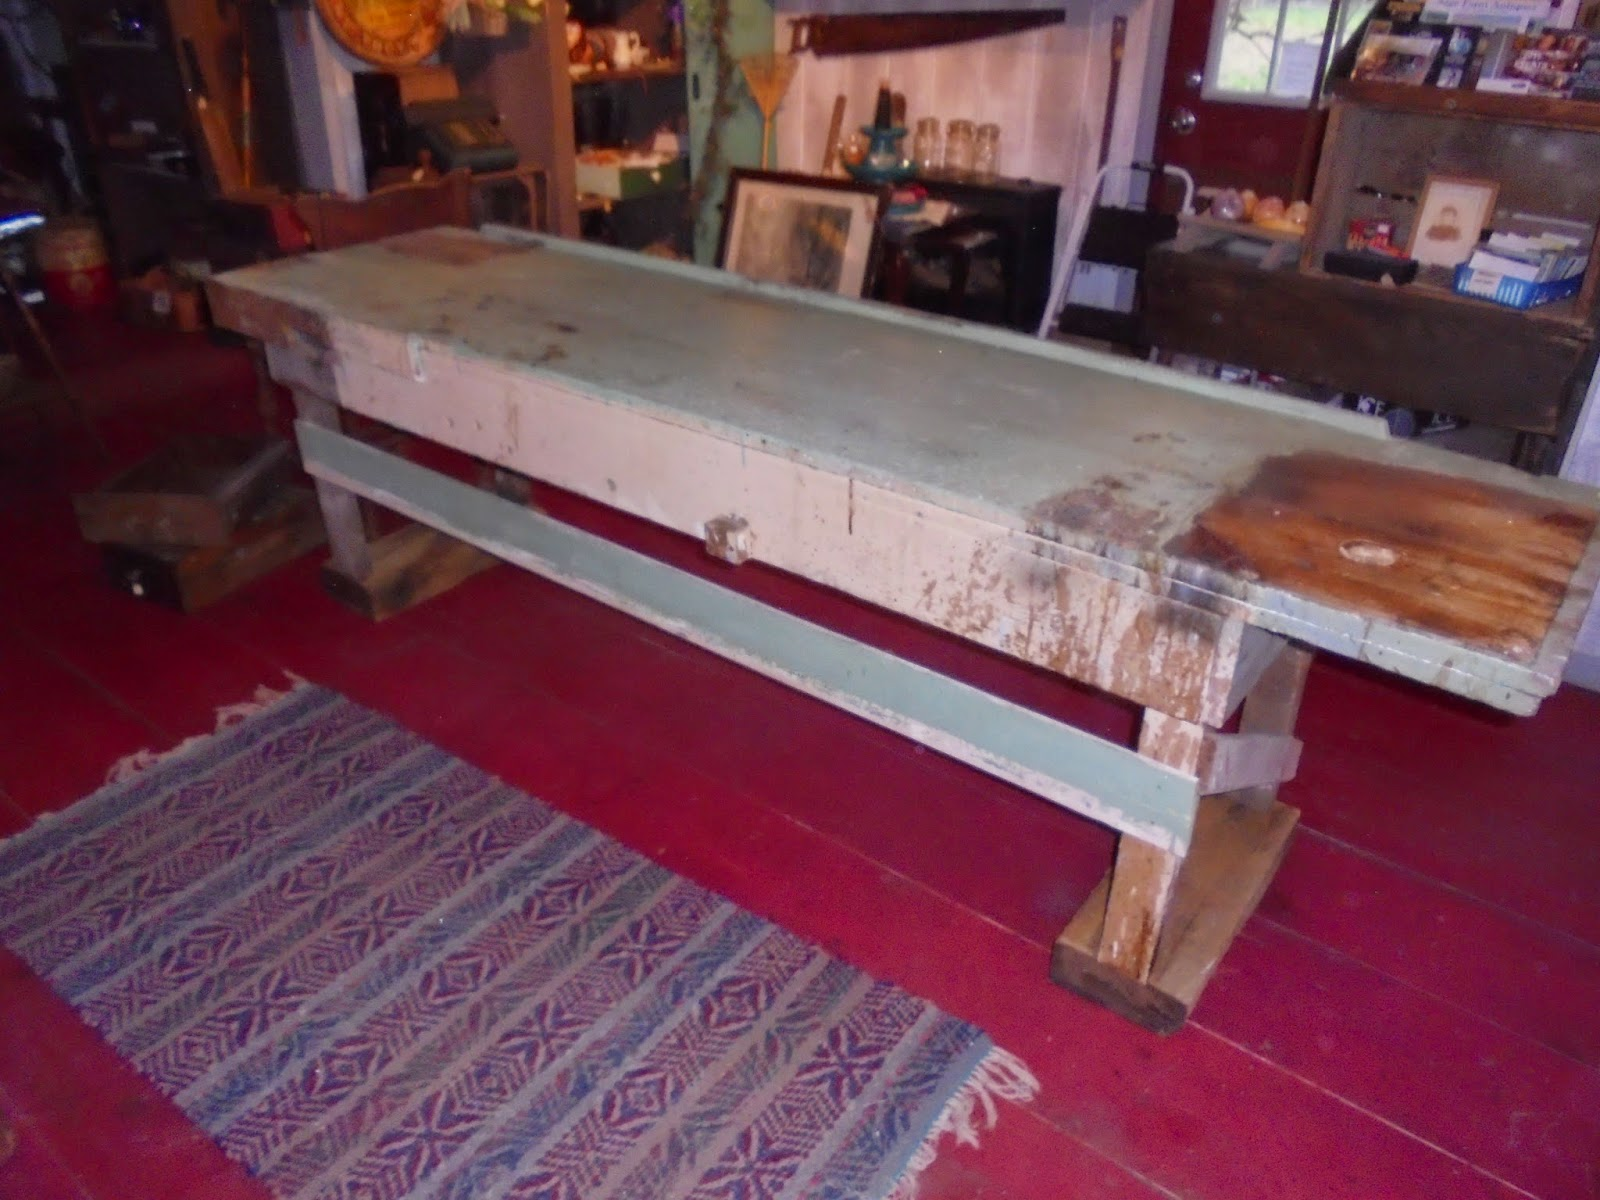 Pleasing Log Cabin Antiques Gifts Long Wooden Workbench Machost Co Dining Chair Design Ideas Machostcouk